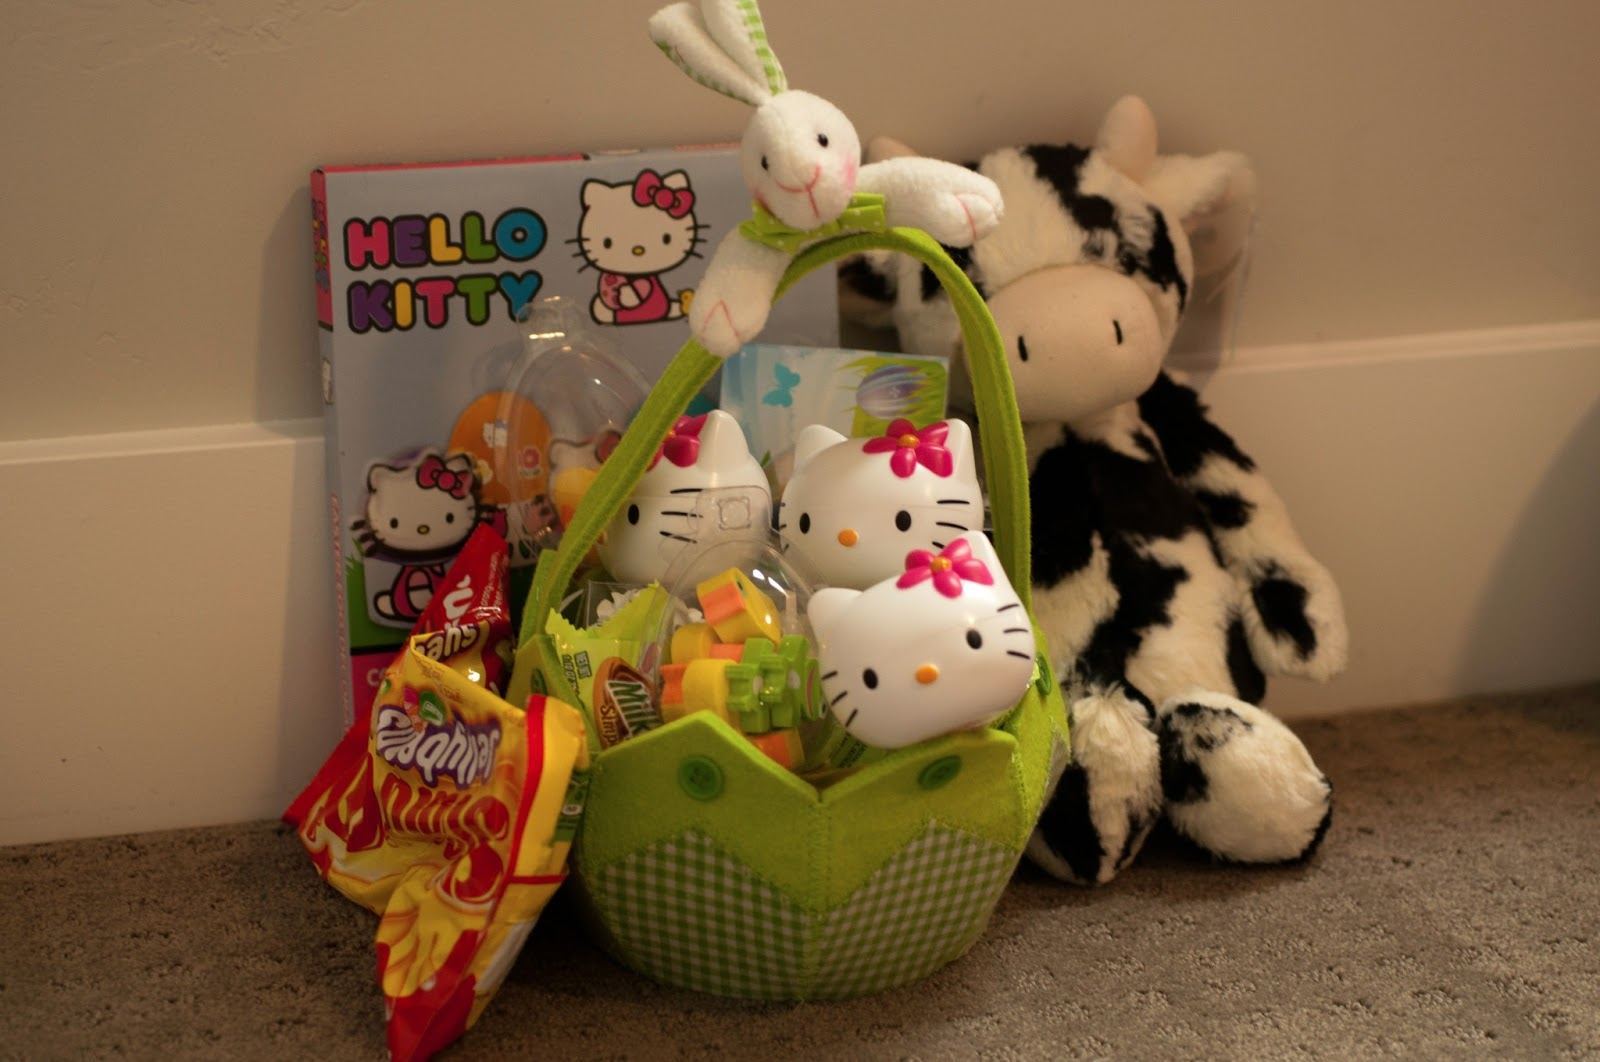 easter, girl easter basket, hello kitty, hello kitty easter egg, cow, jelly cat, jellycat, jellycat cow, easter egg dye, fabric basket, starburst jelly beans, snickers, easter egg snickers